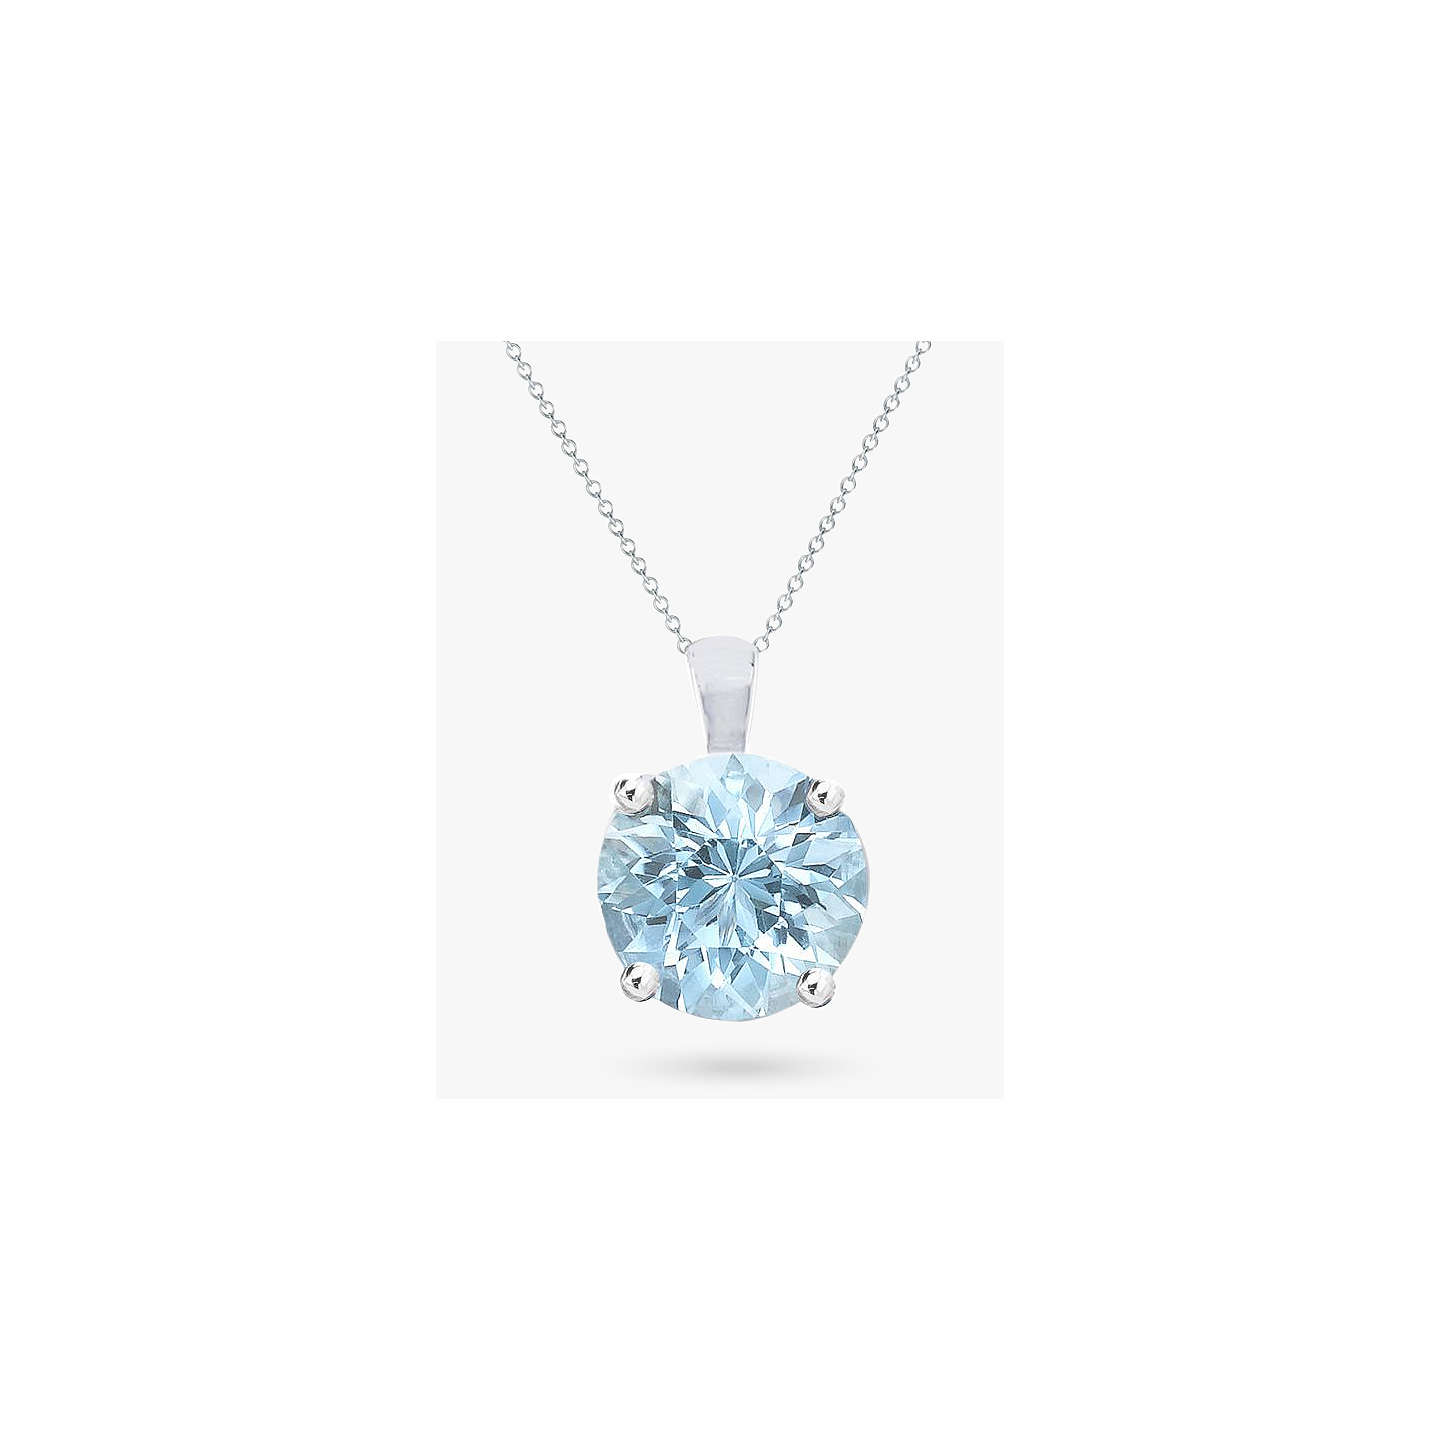 round aaa necklace wg necklaces solitaire pendants marine aqua pendant bezel aquamarine diamond n set